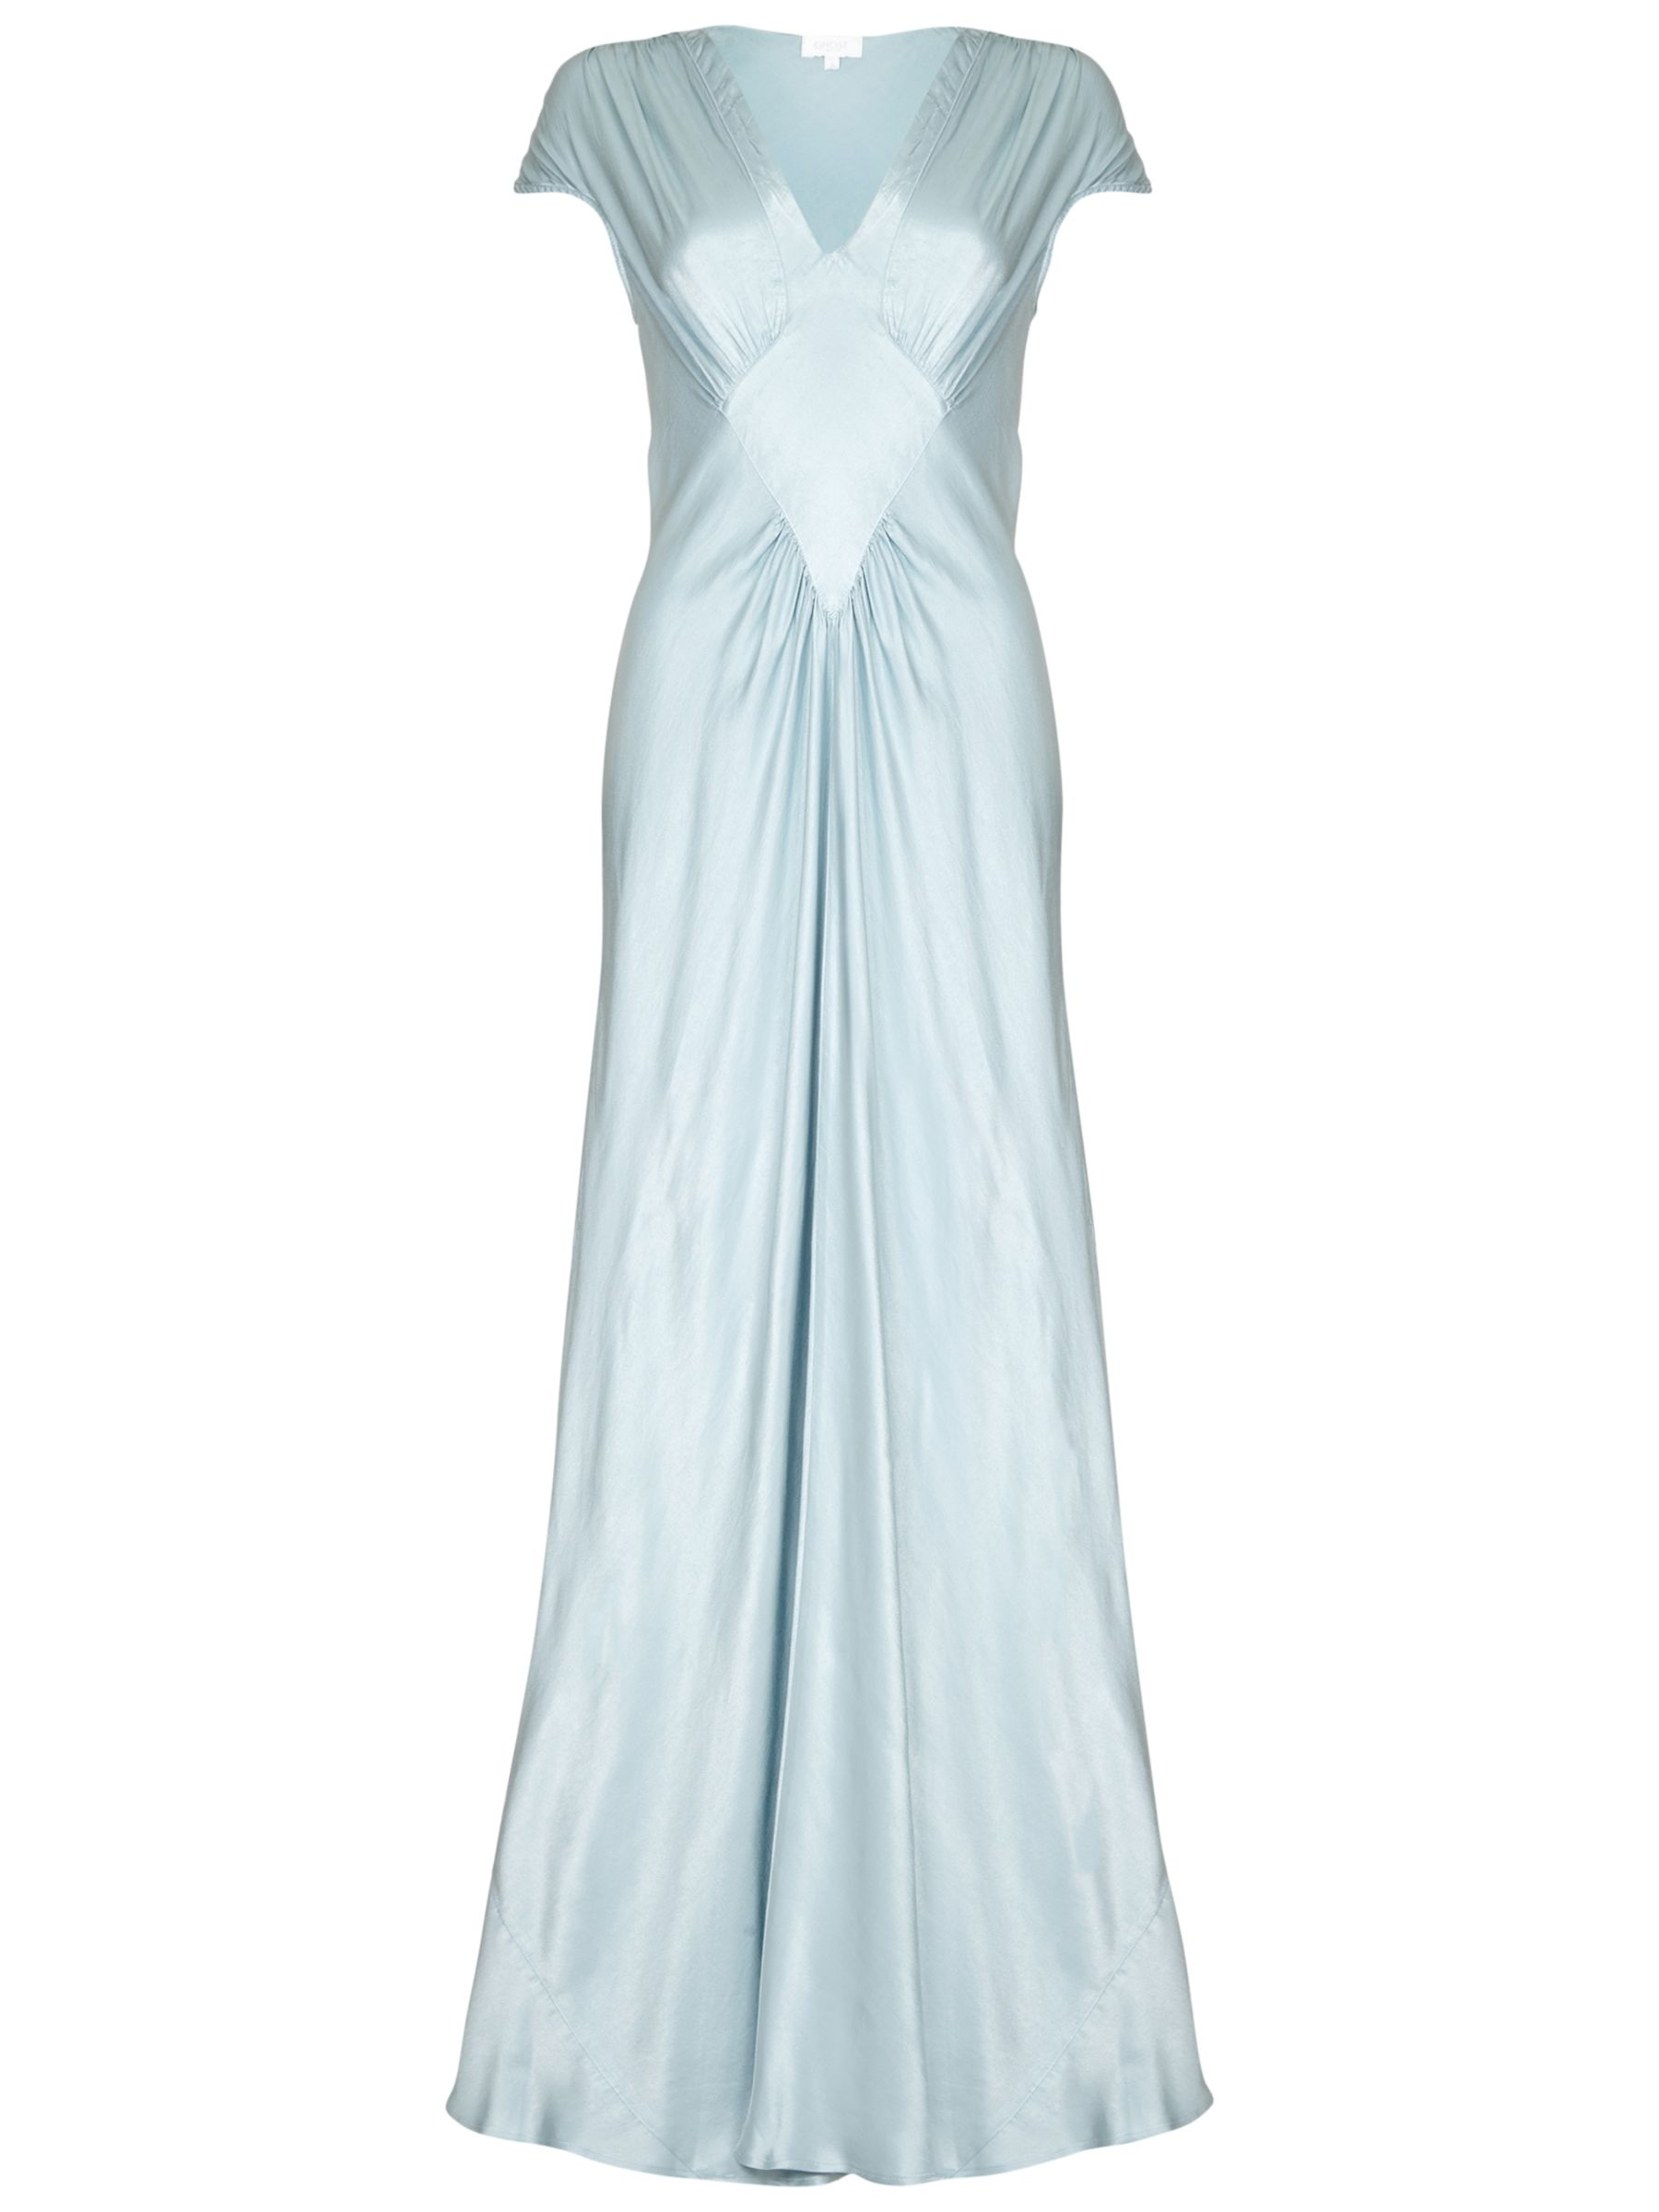 1930s Style Fashion Dresses Ghost Iris Satin Dress £265.00 AT vintagedancer.com